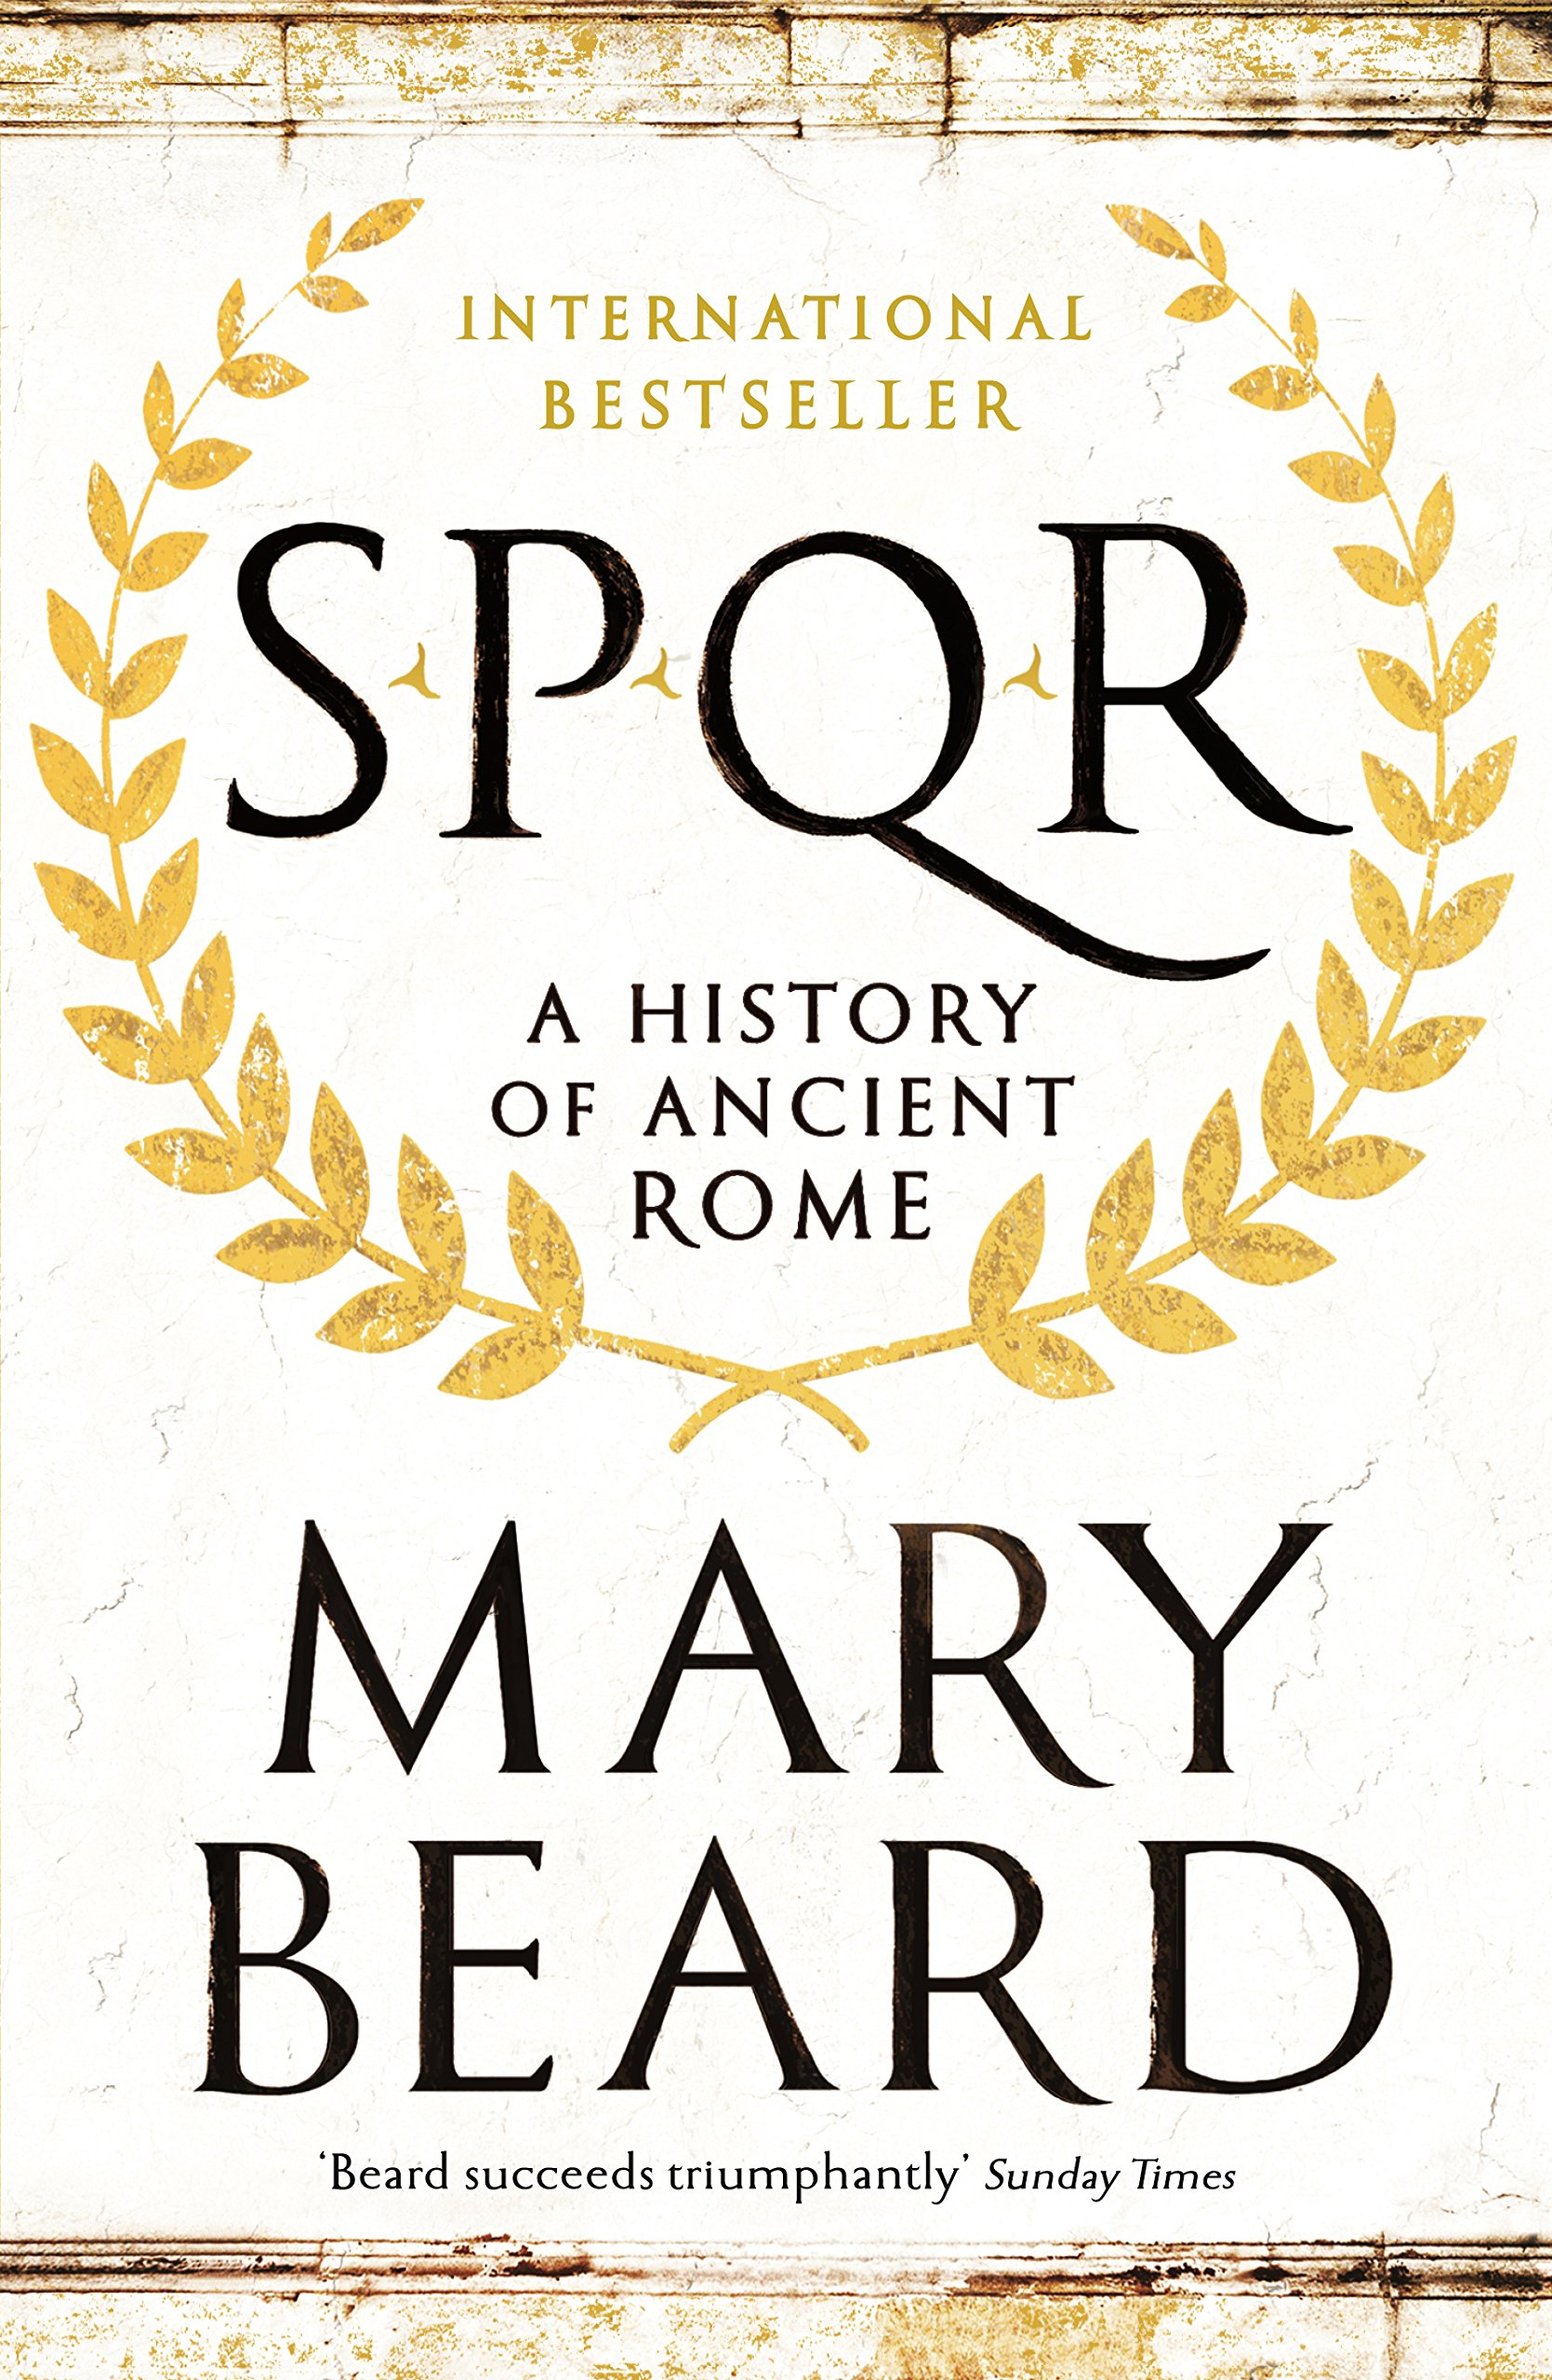 SPQR - what does abbreviation mean? 98